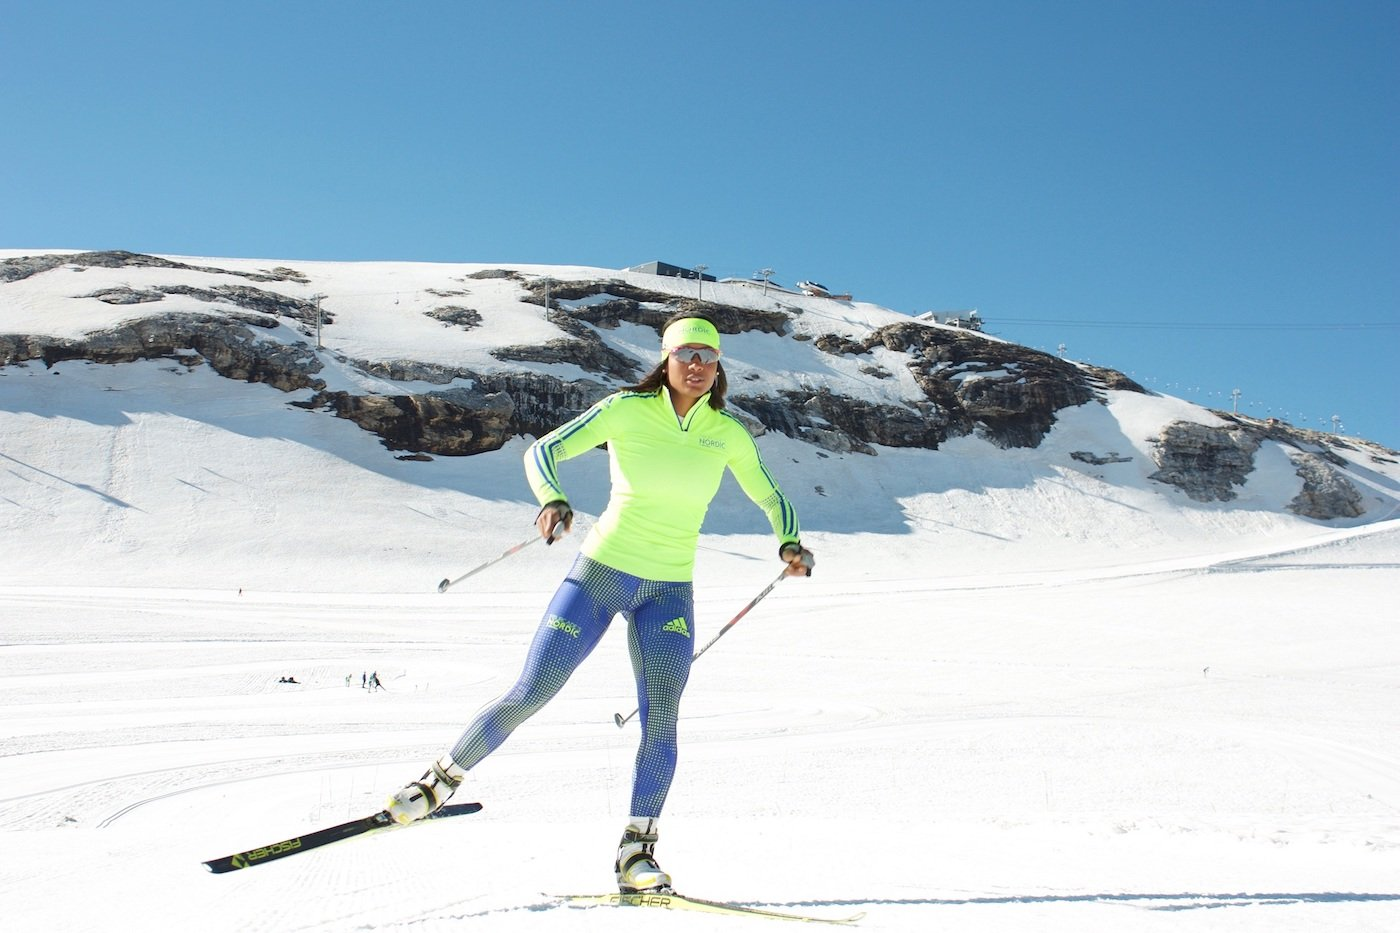 Skiing technique for nordic skiers